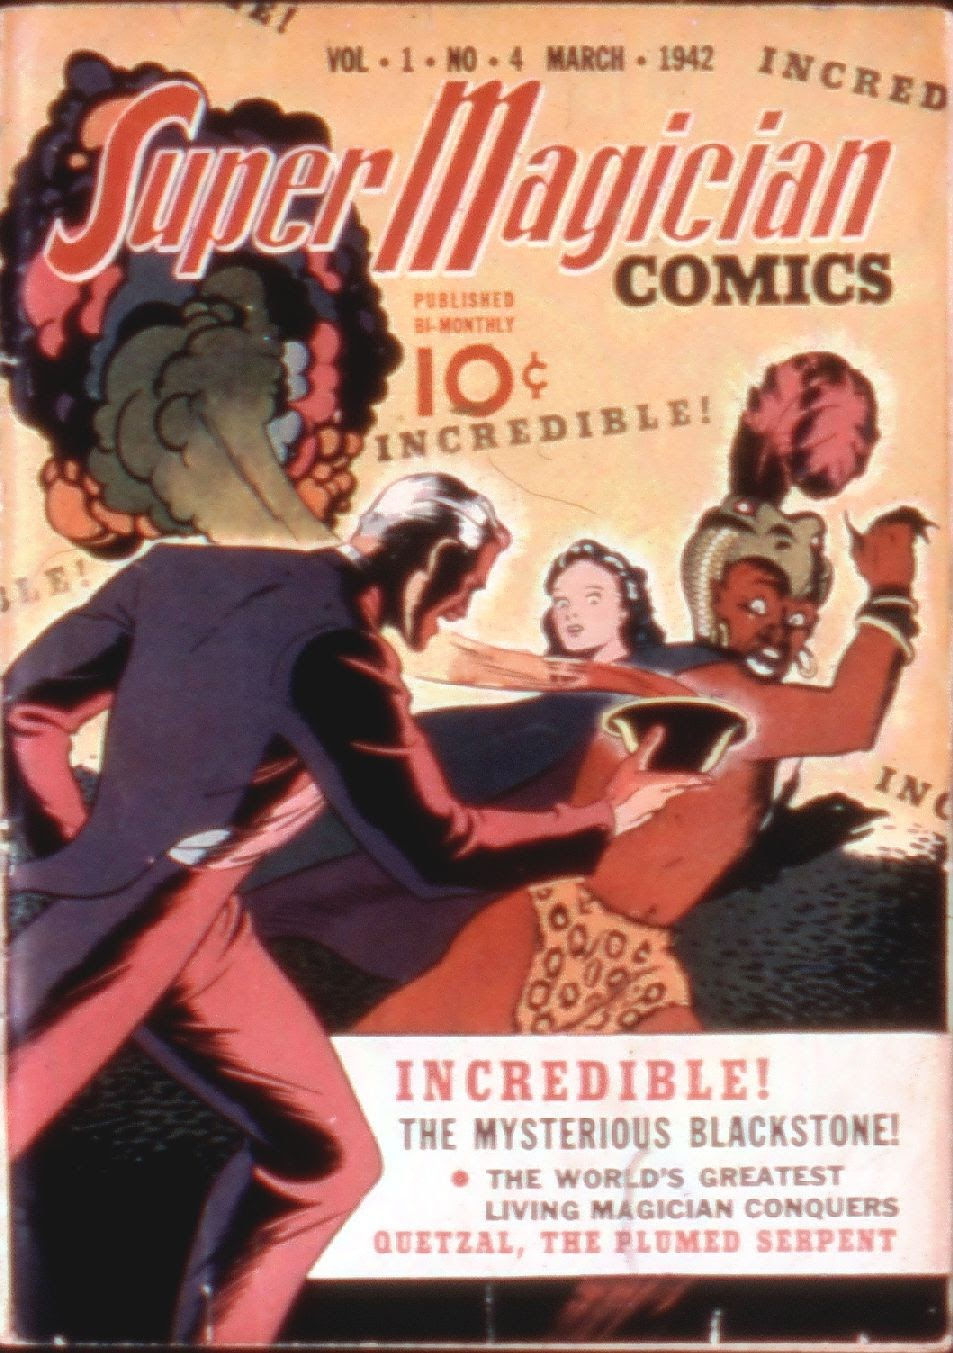 Read online Super-Magician Comics comic -  Issue #4 - 1